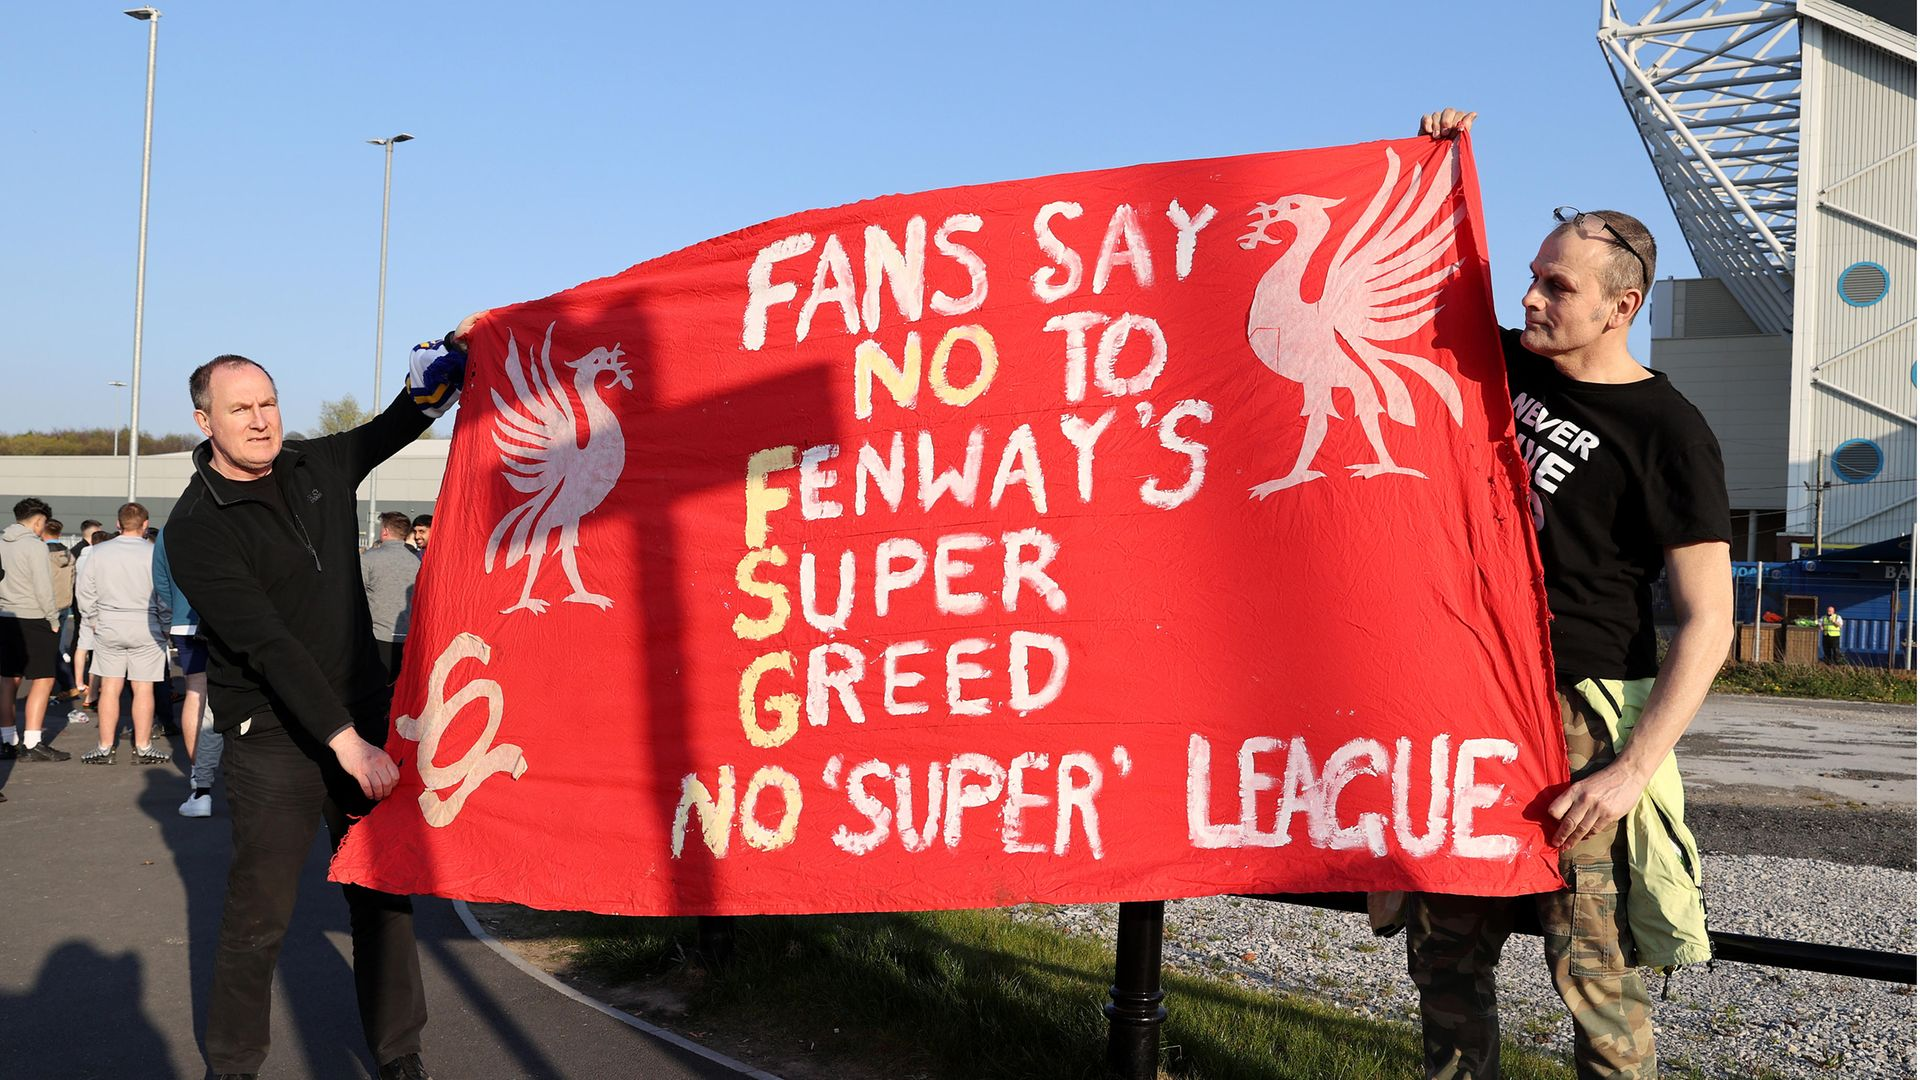 Liverpool fans hold up a protest banner against the European Super League outside Elland Road on April 19, 2021 in Leeds - Credit: Photo by Clive Brunskill/Getty Images